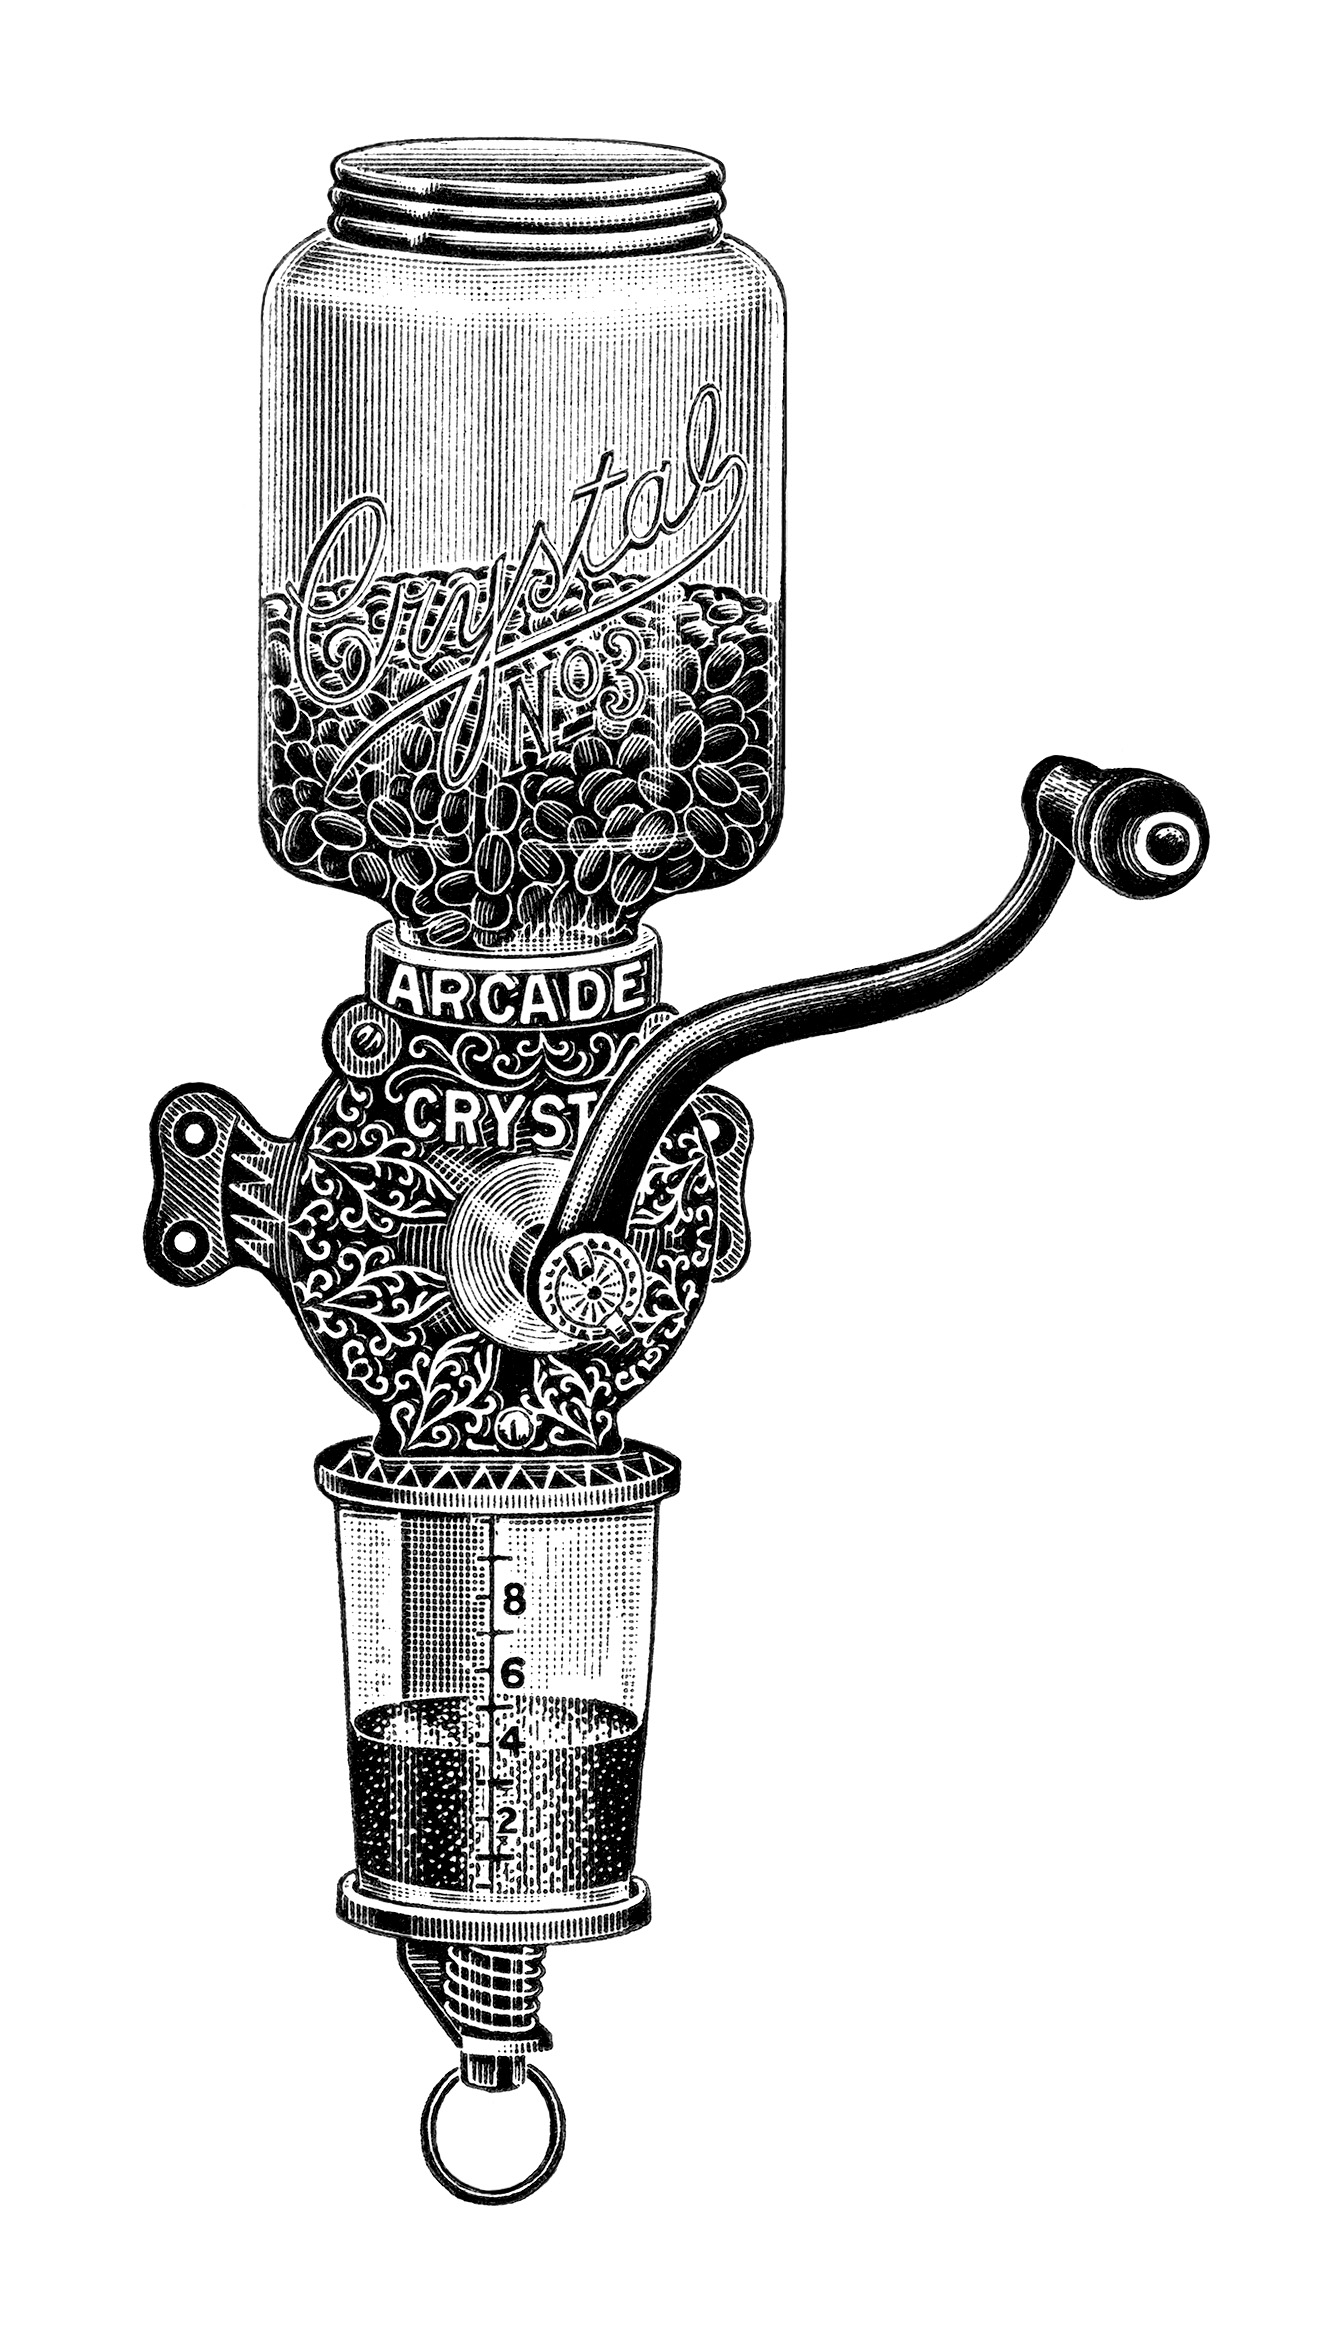 Crystal coffee grinder ad. Arcade clipart black and white